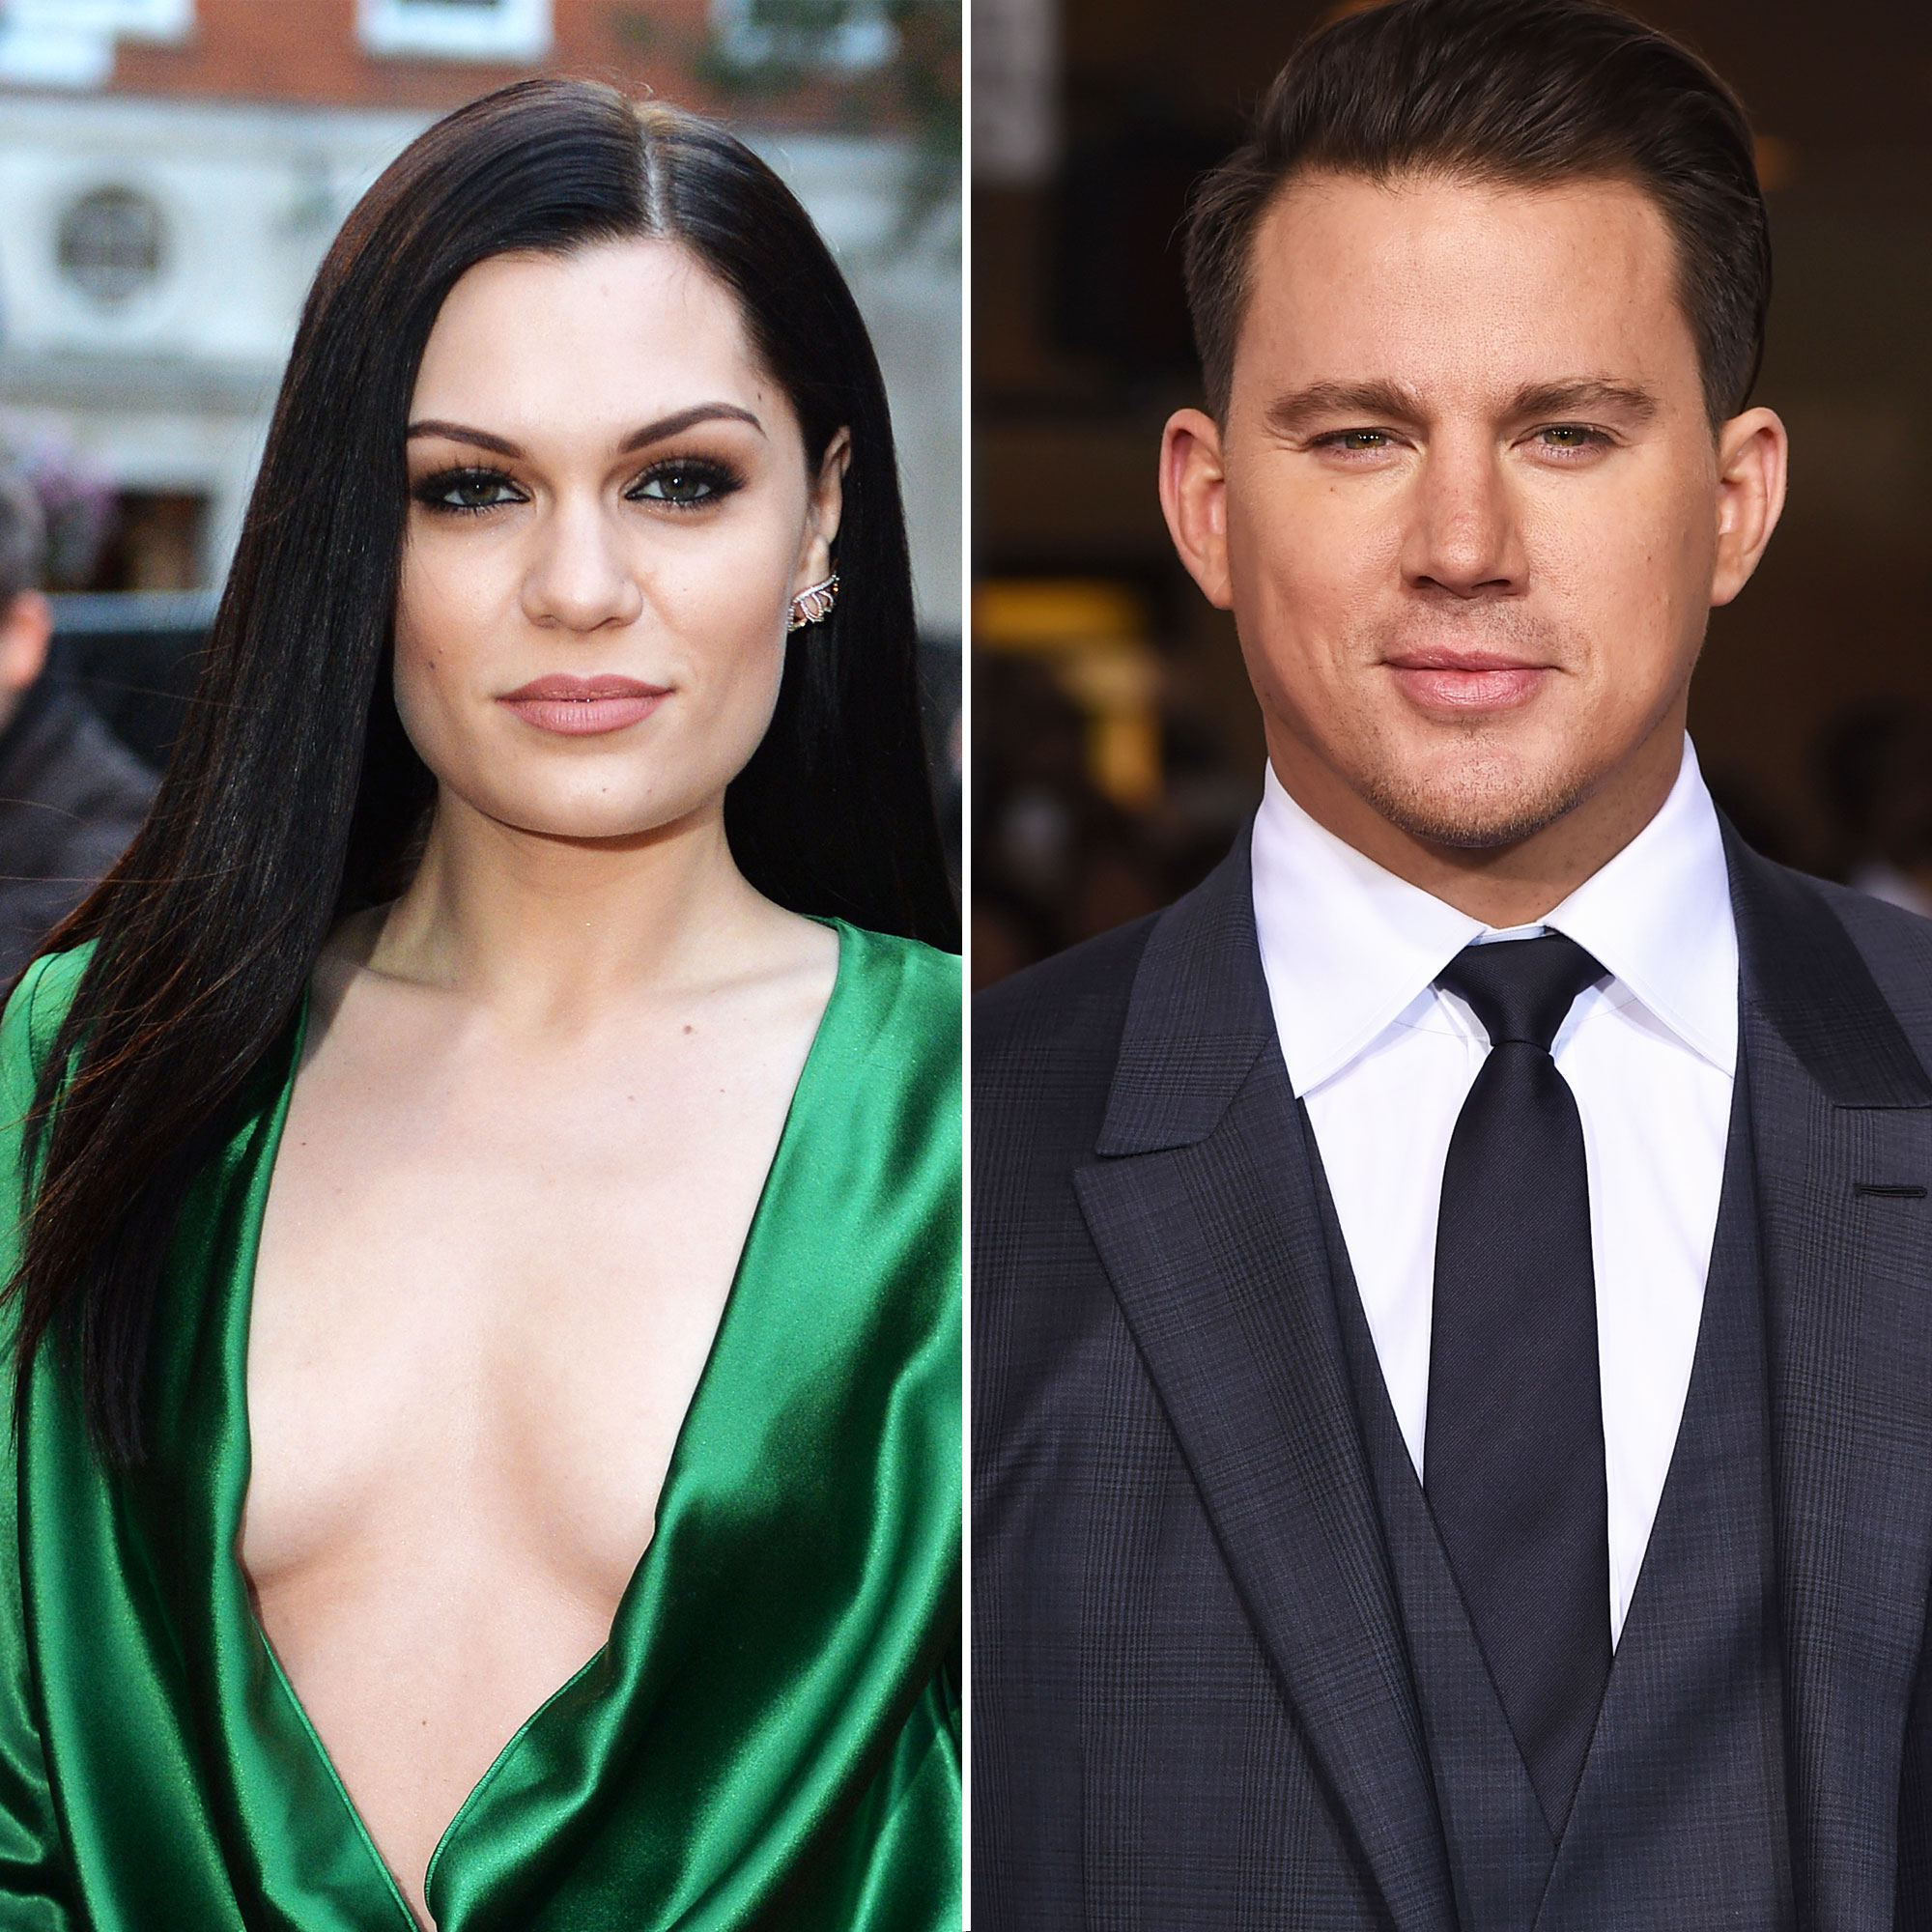 "Celebrity Couples of 2018 Channing Tatum and Jessie J - Us revealed in October that Tatum started dating the singer after his split from his wife of eight years, Jenna Dewan. ""It's new, casual and they're having fun together,"" an insider told Us at the time."